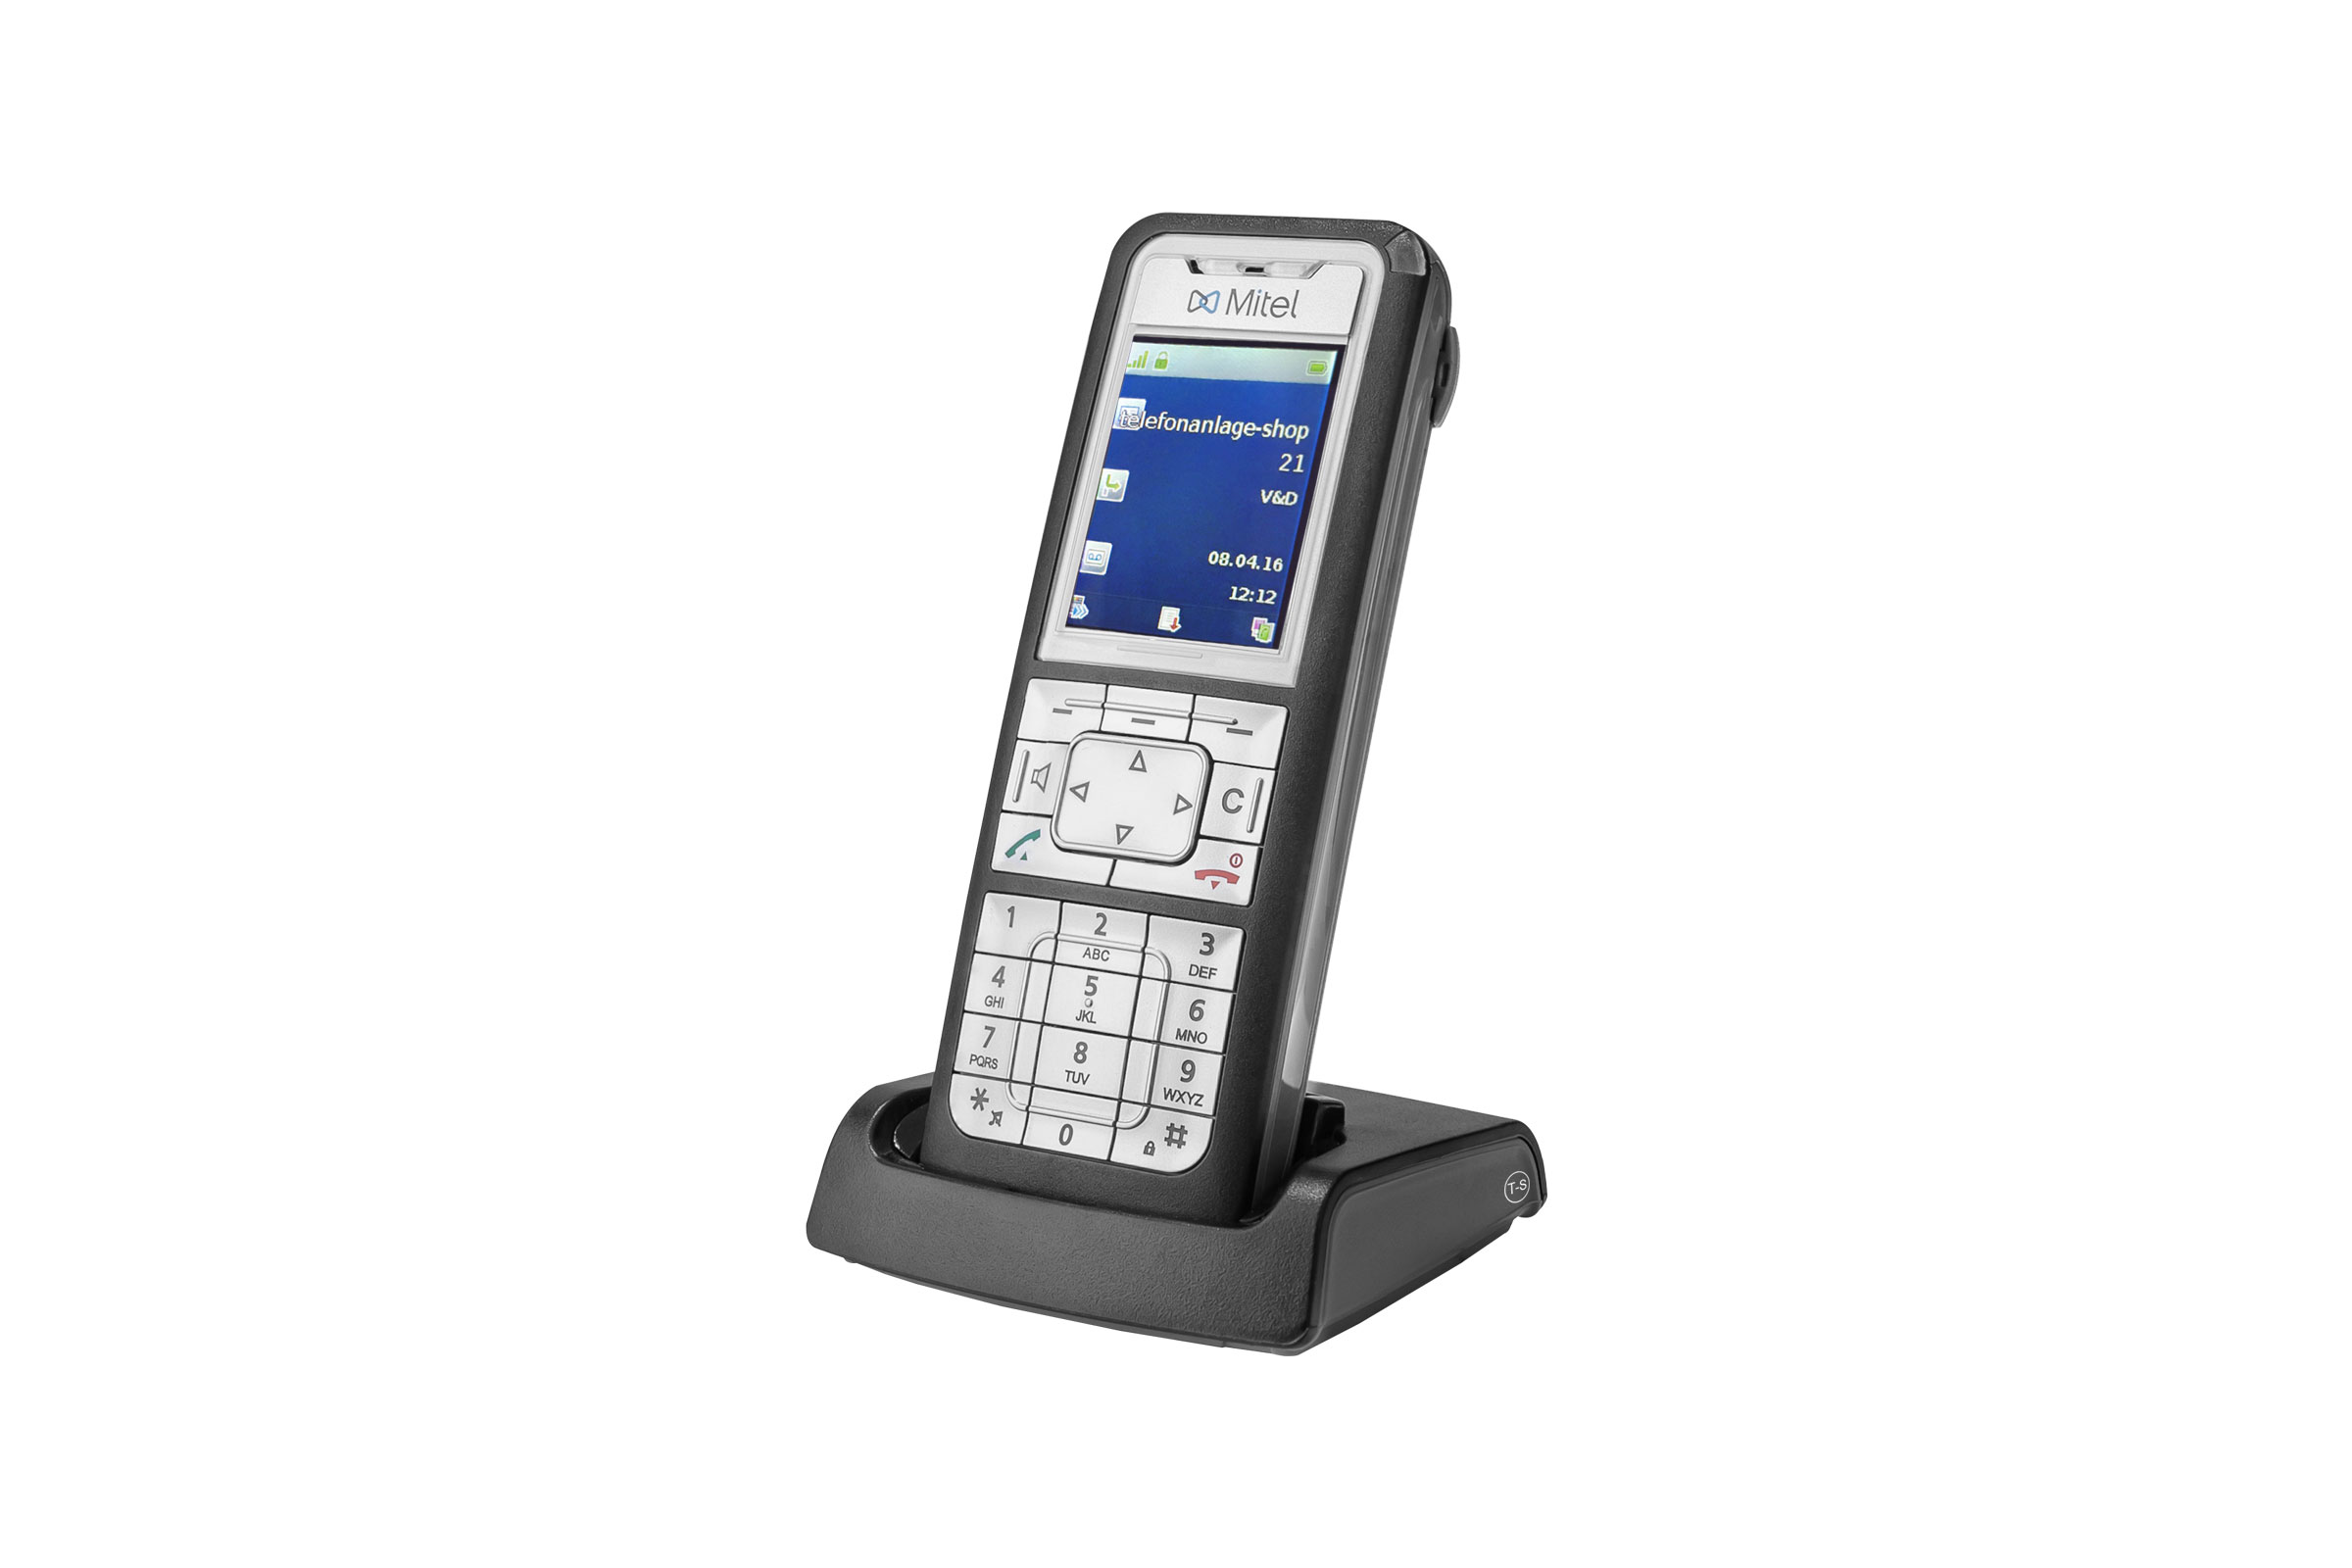 Vollansicht - Mitel 612 DECT Phone - Set mit Ladeschale (Aastra 612d)